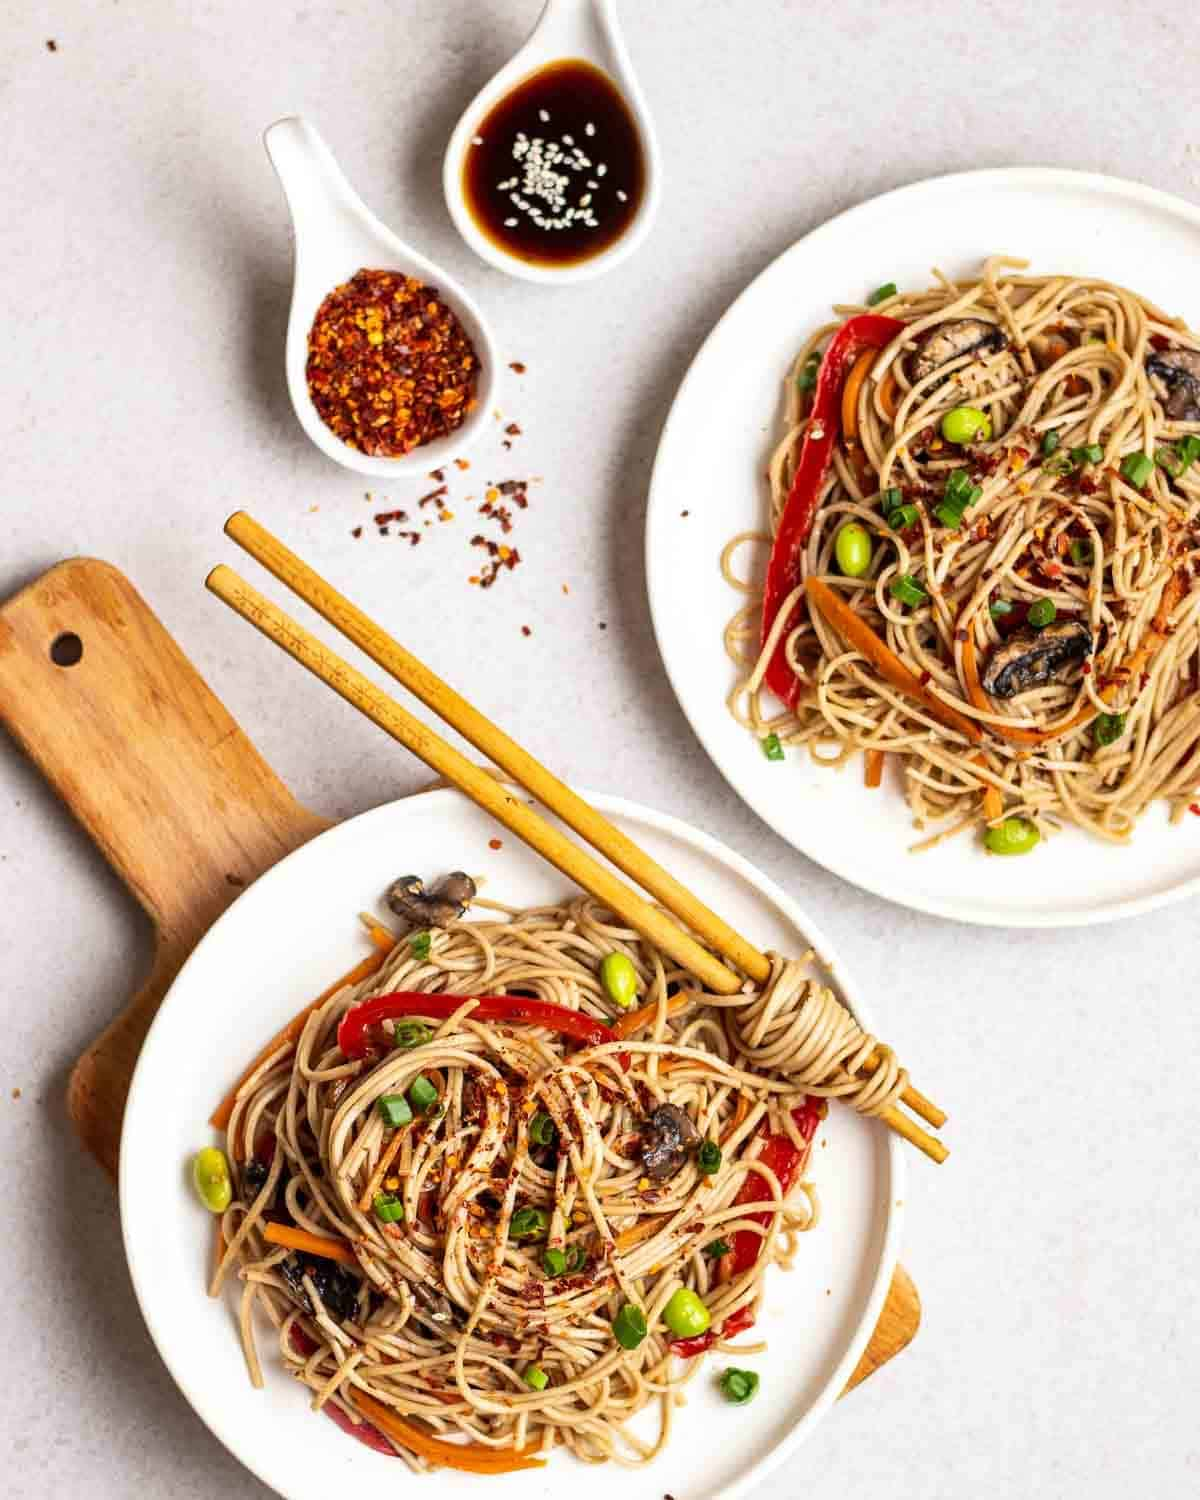 2 plates filled with stir-fry soba noodles with chopsticks. There is some chili flakes and soy sauce beside them.